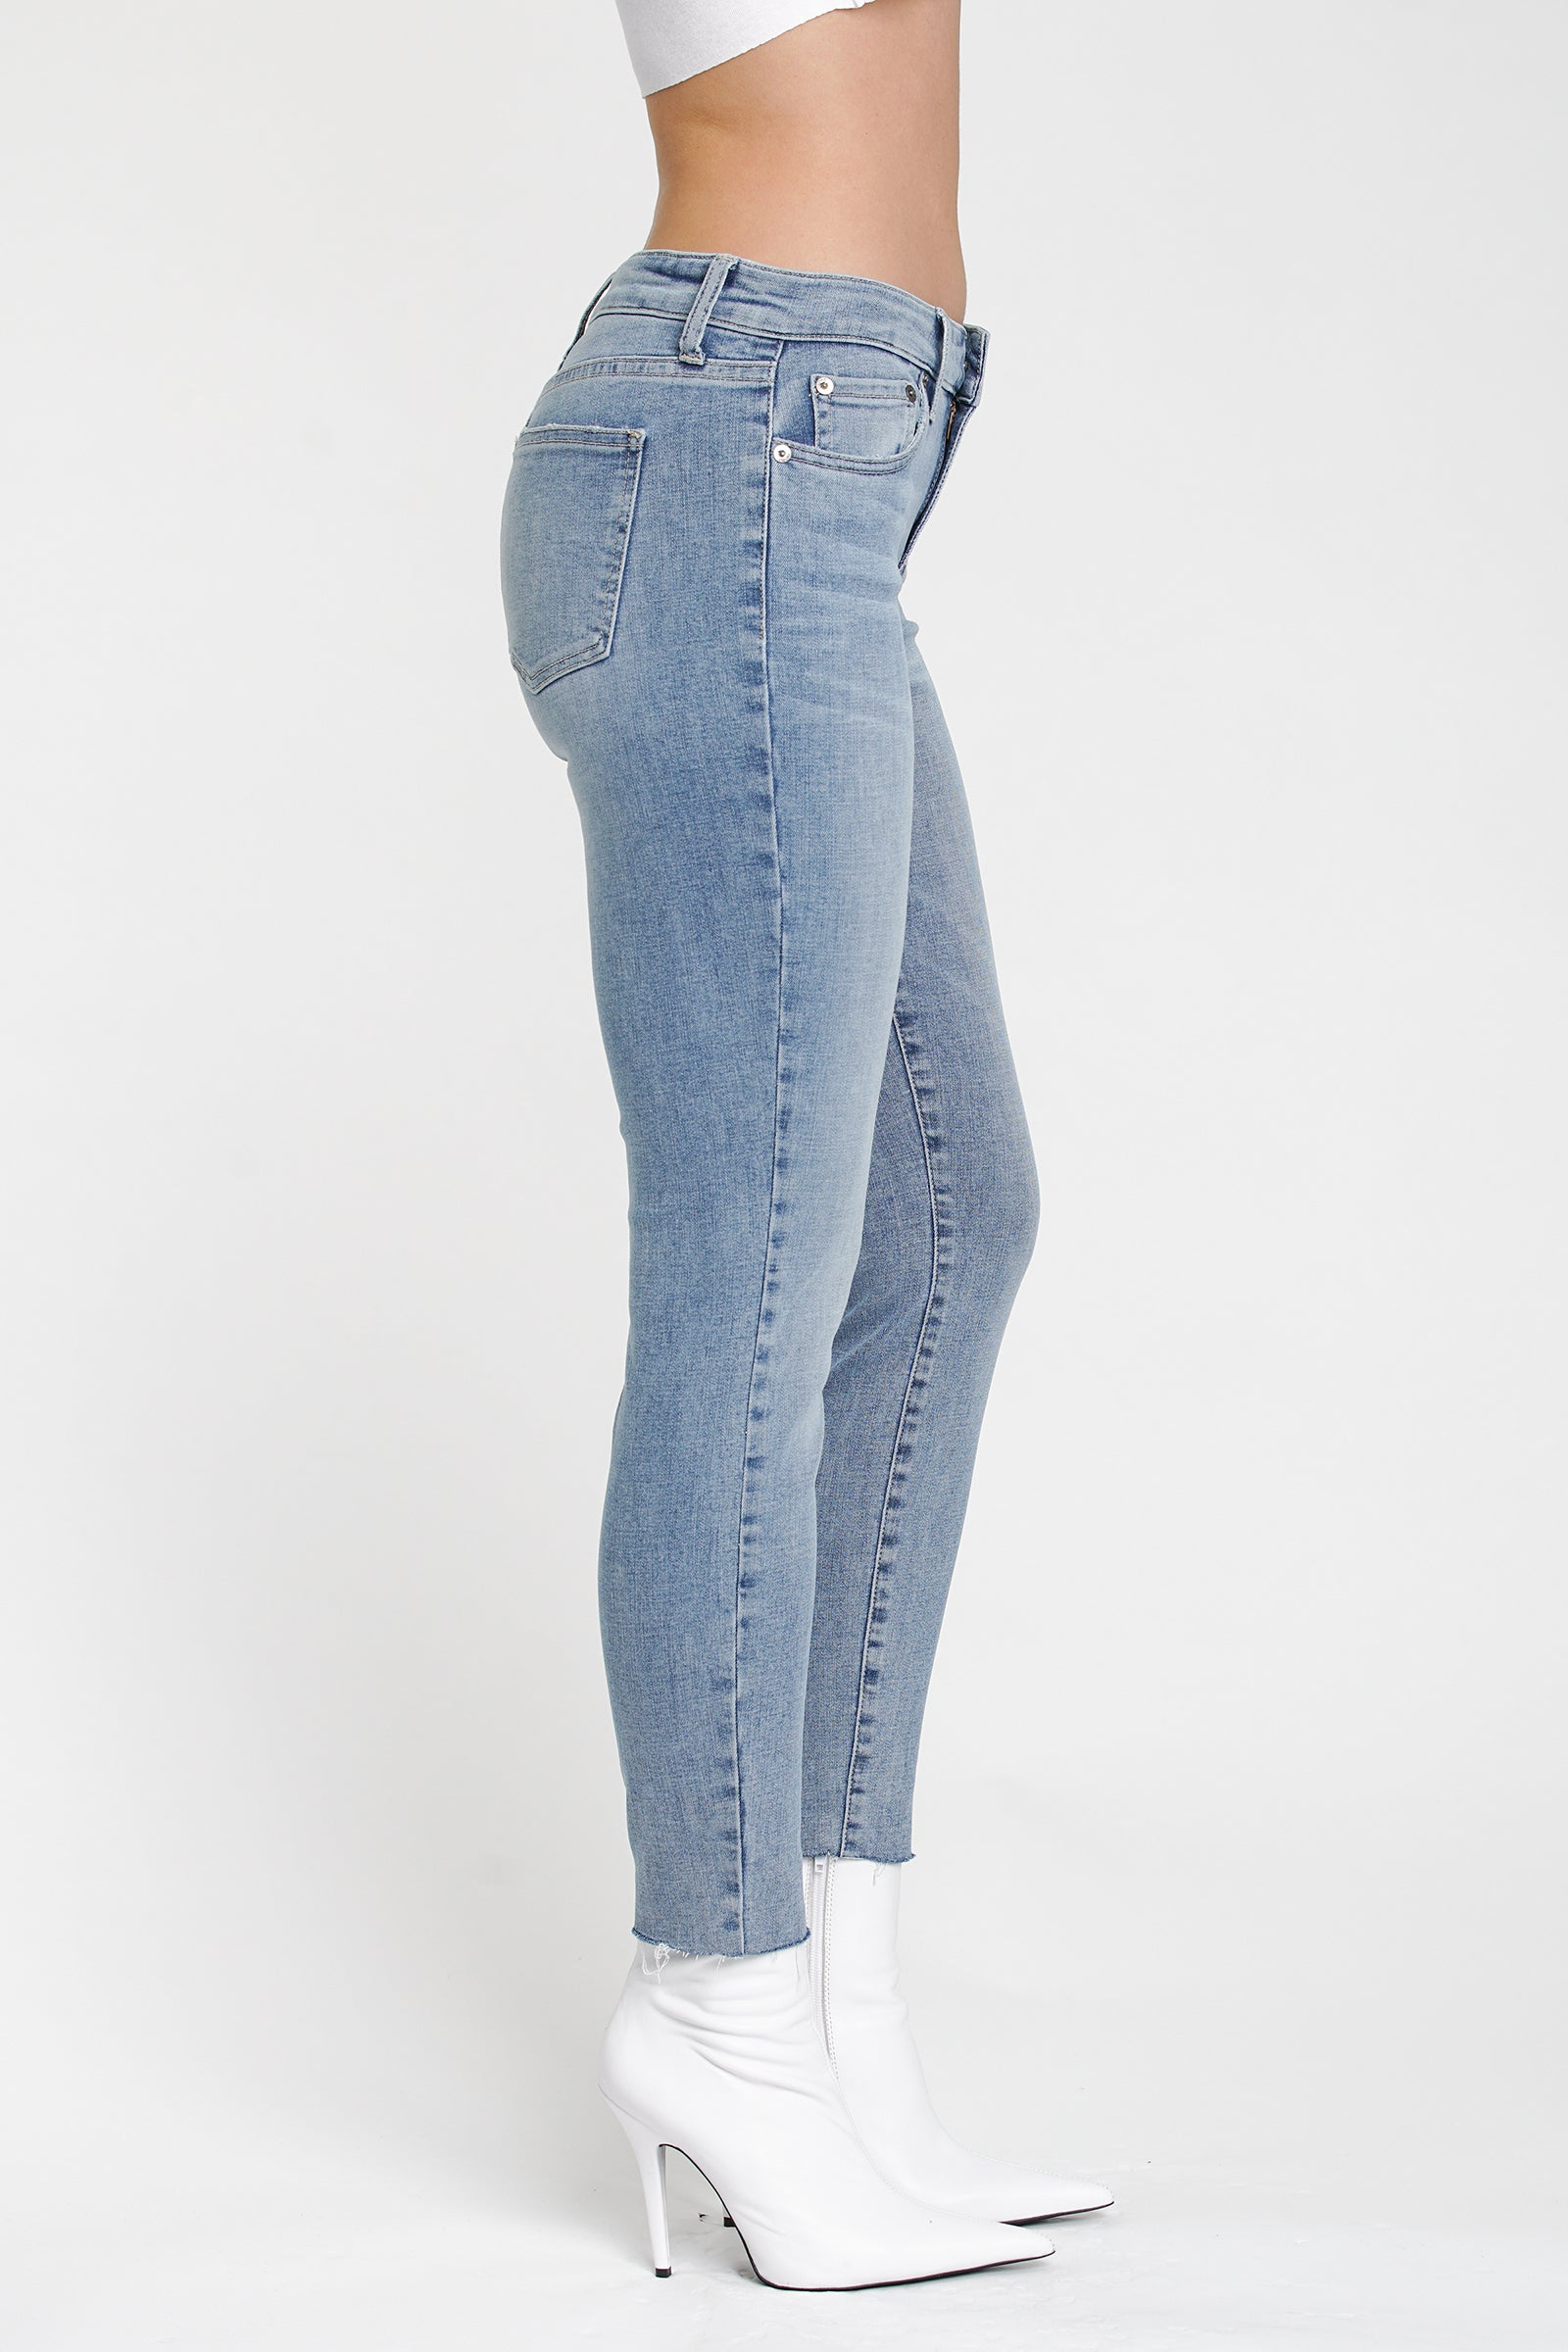 Audrey Mid Rise Skinny - Breezy